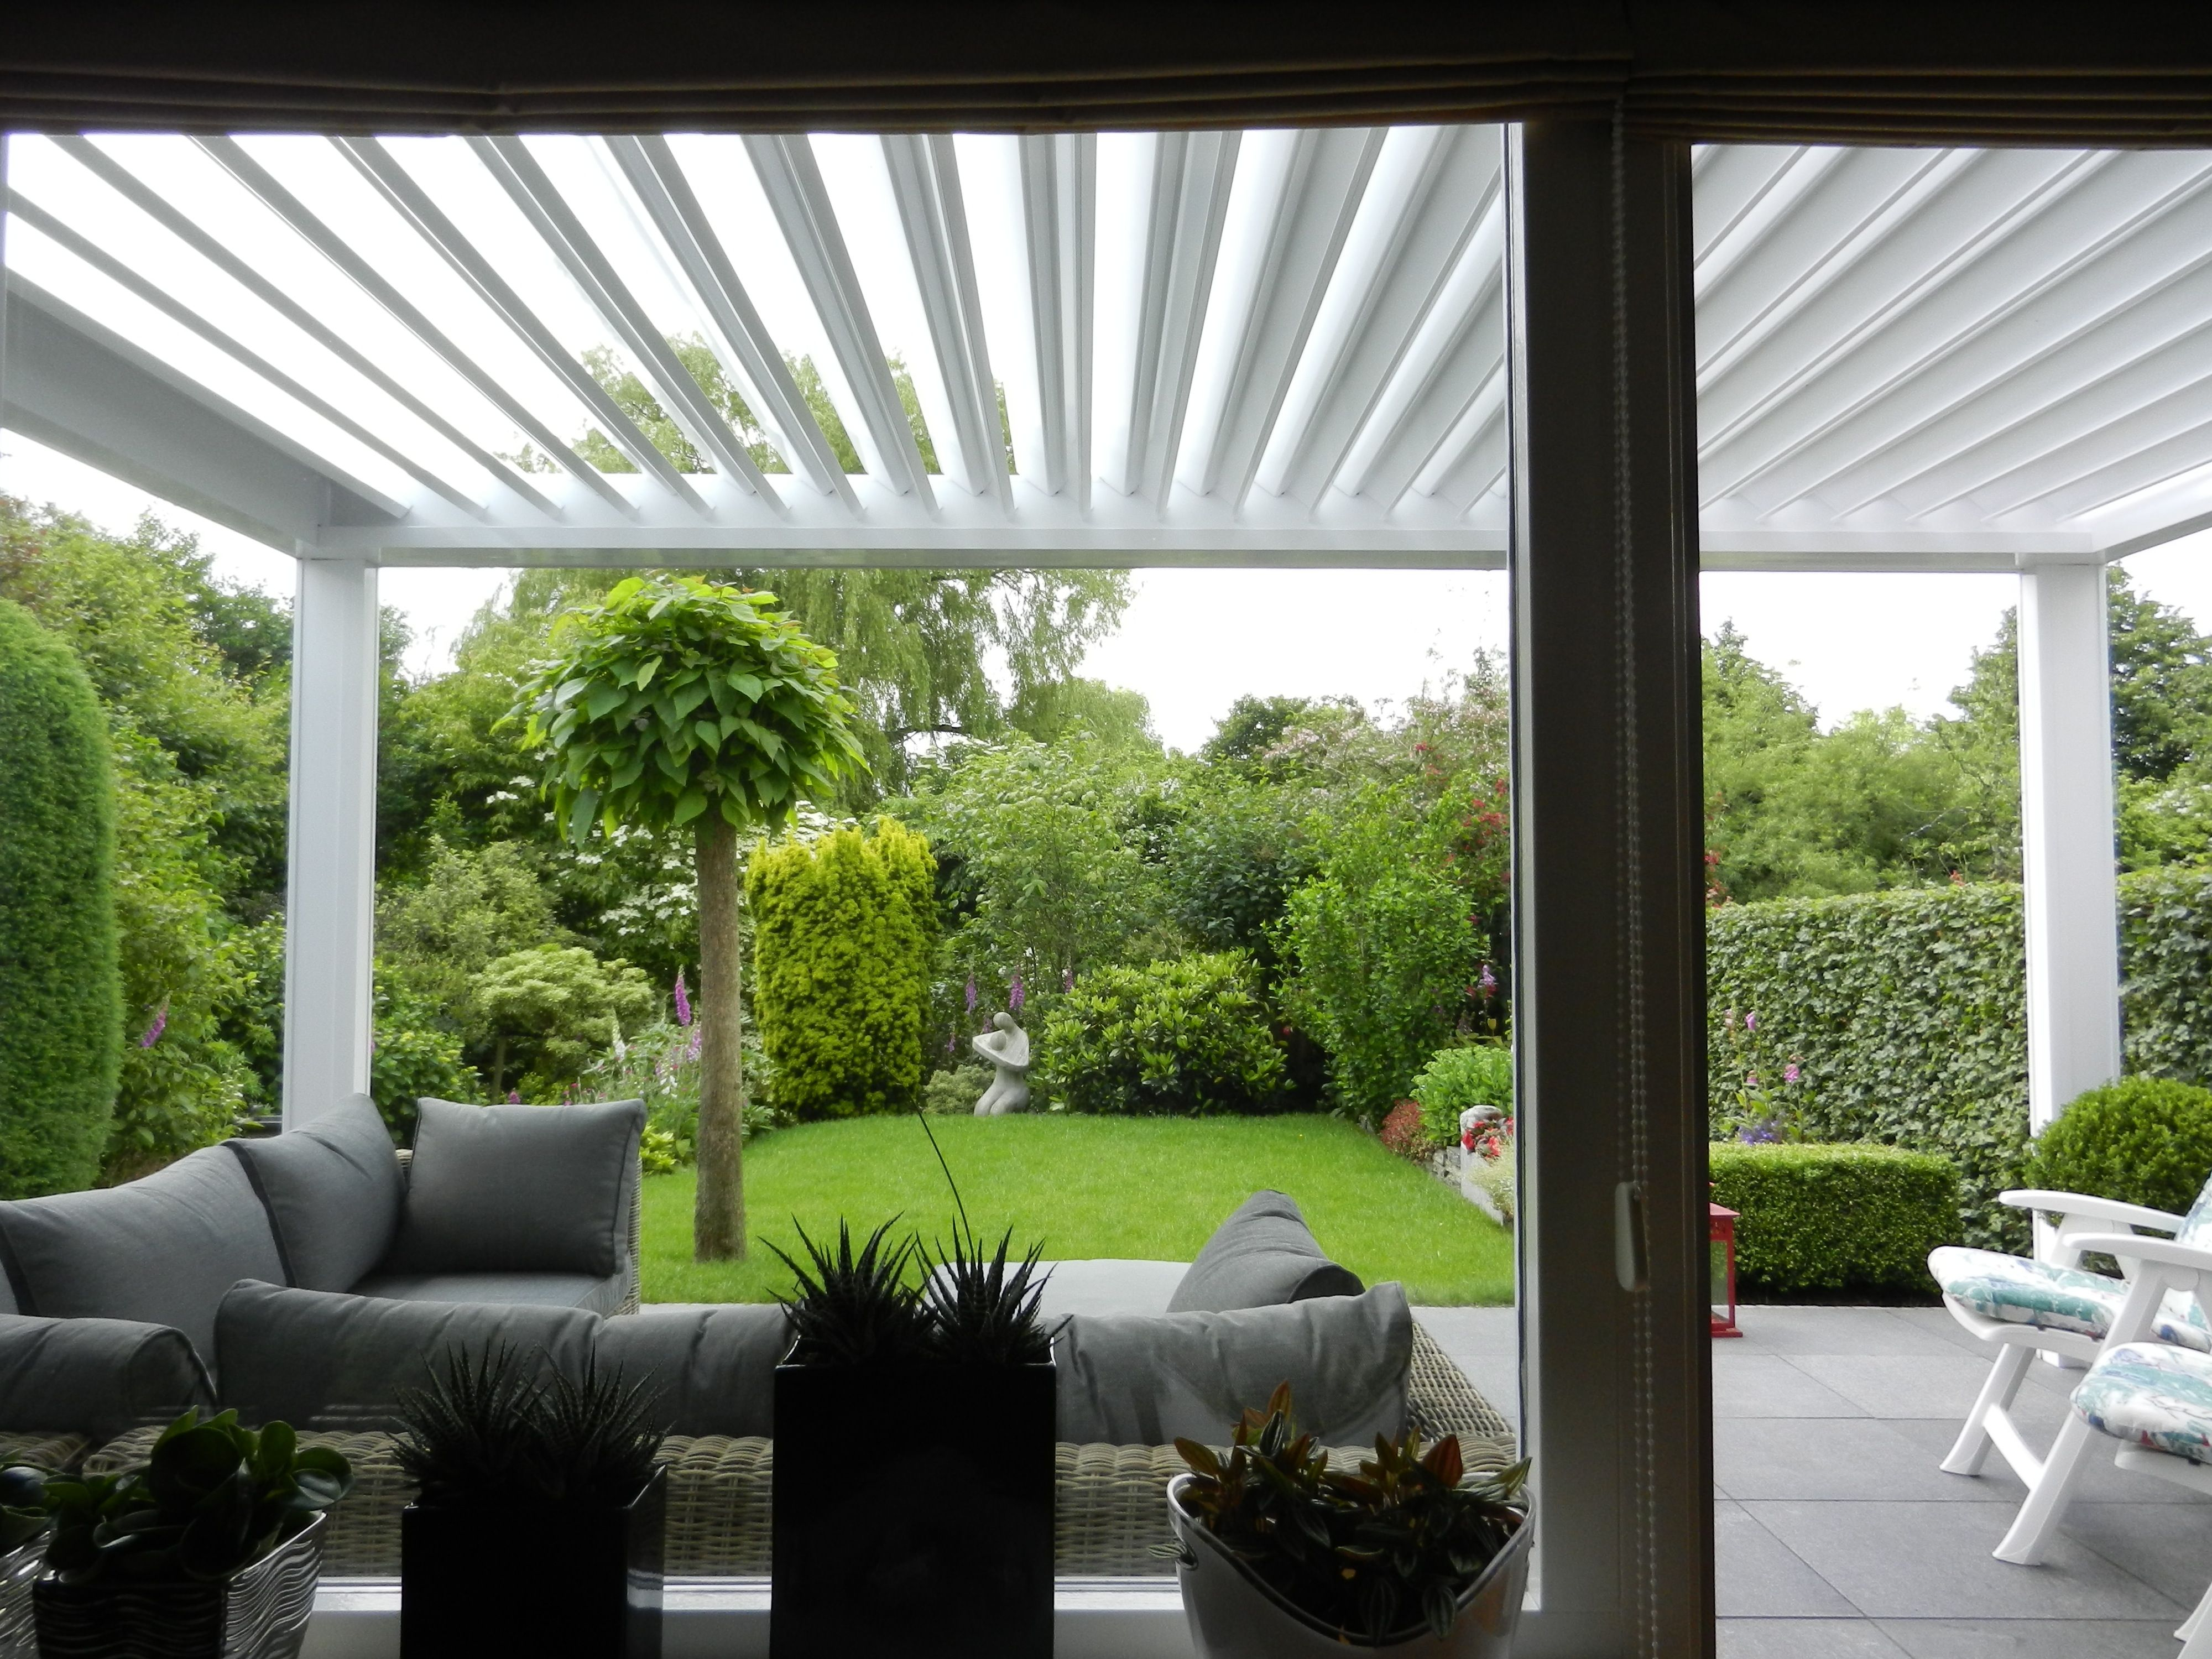 101 best louvered terrace covering - camargue images on pinterest